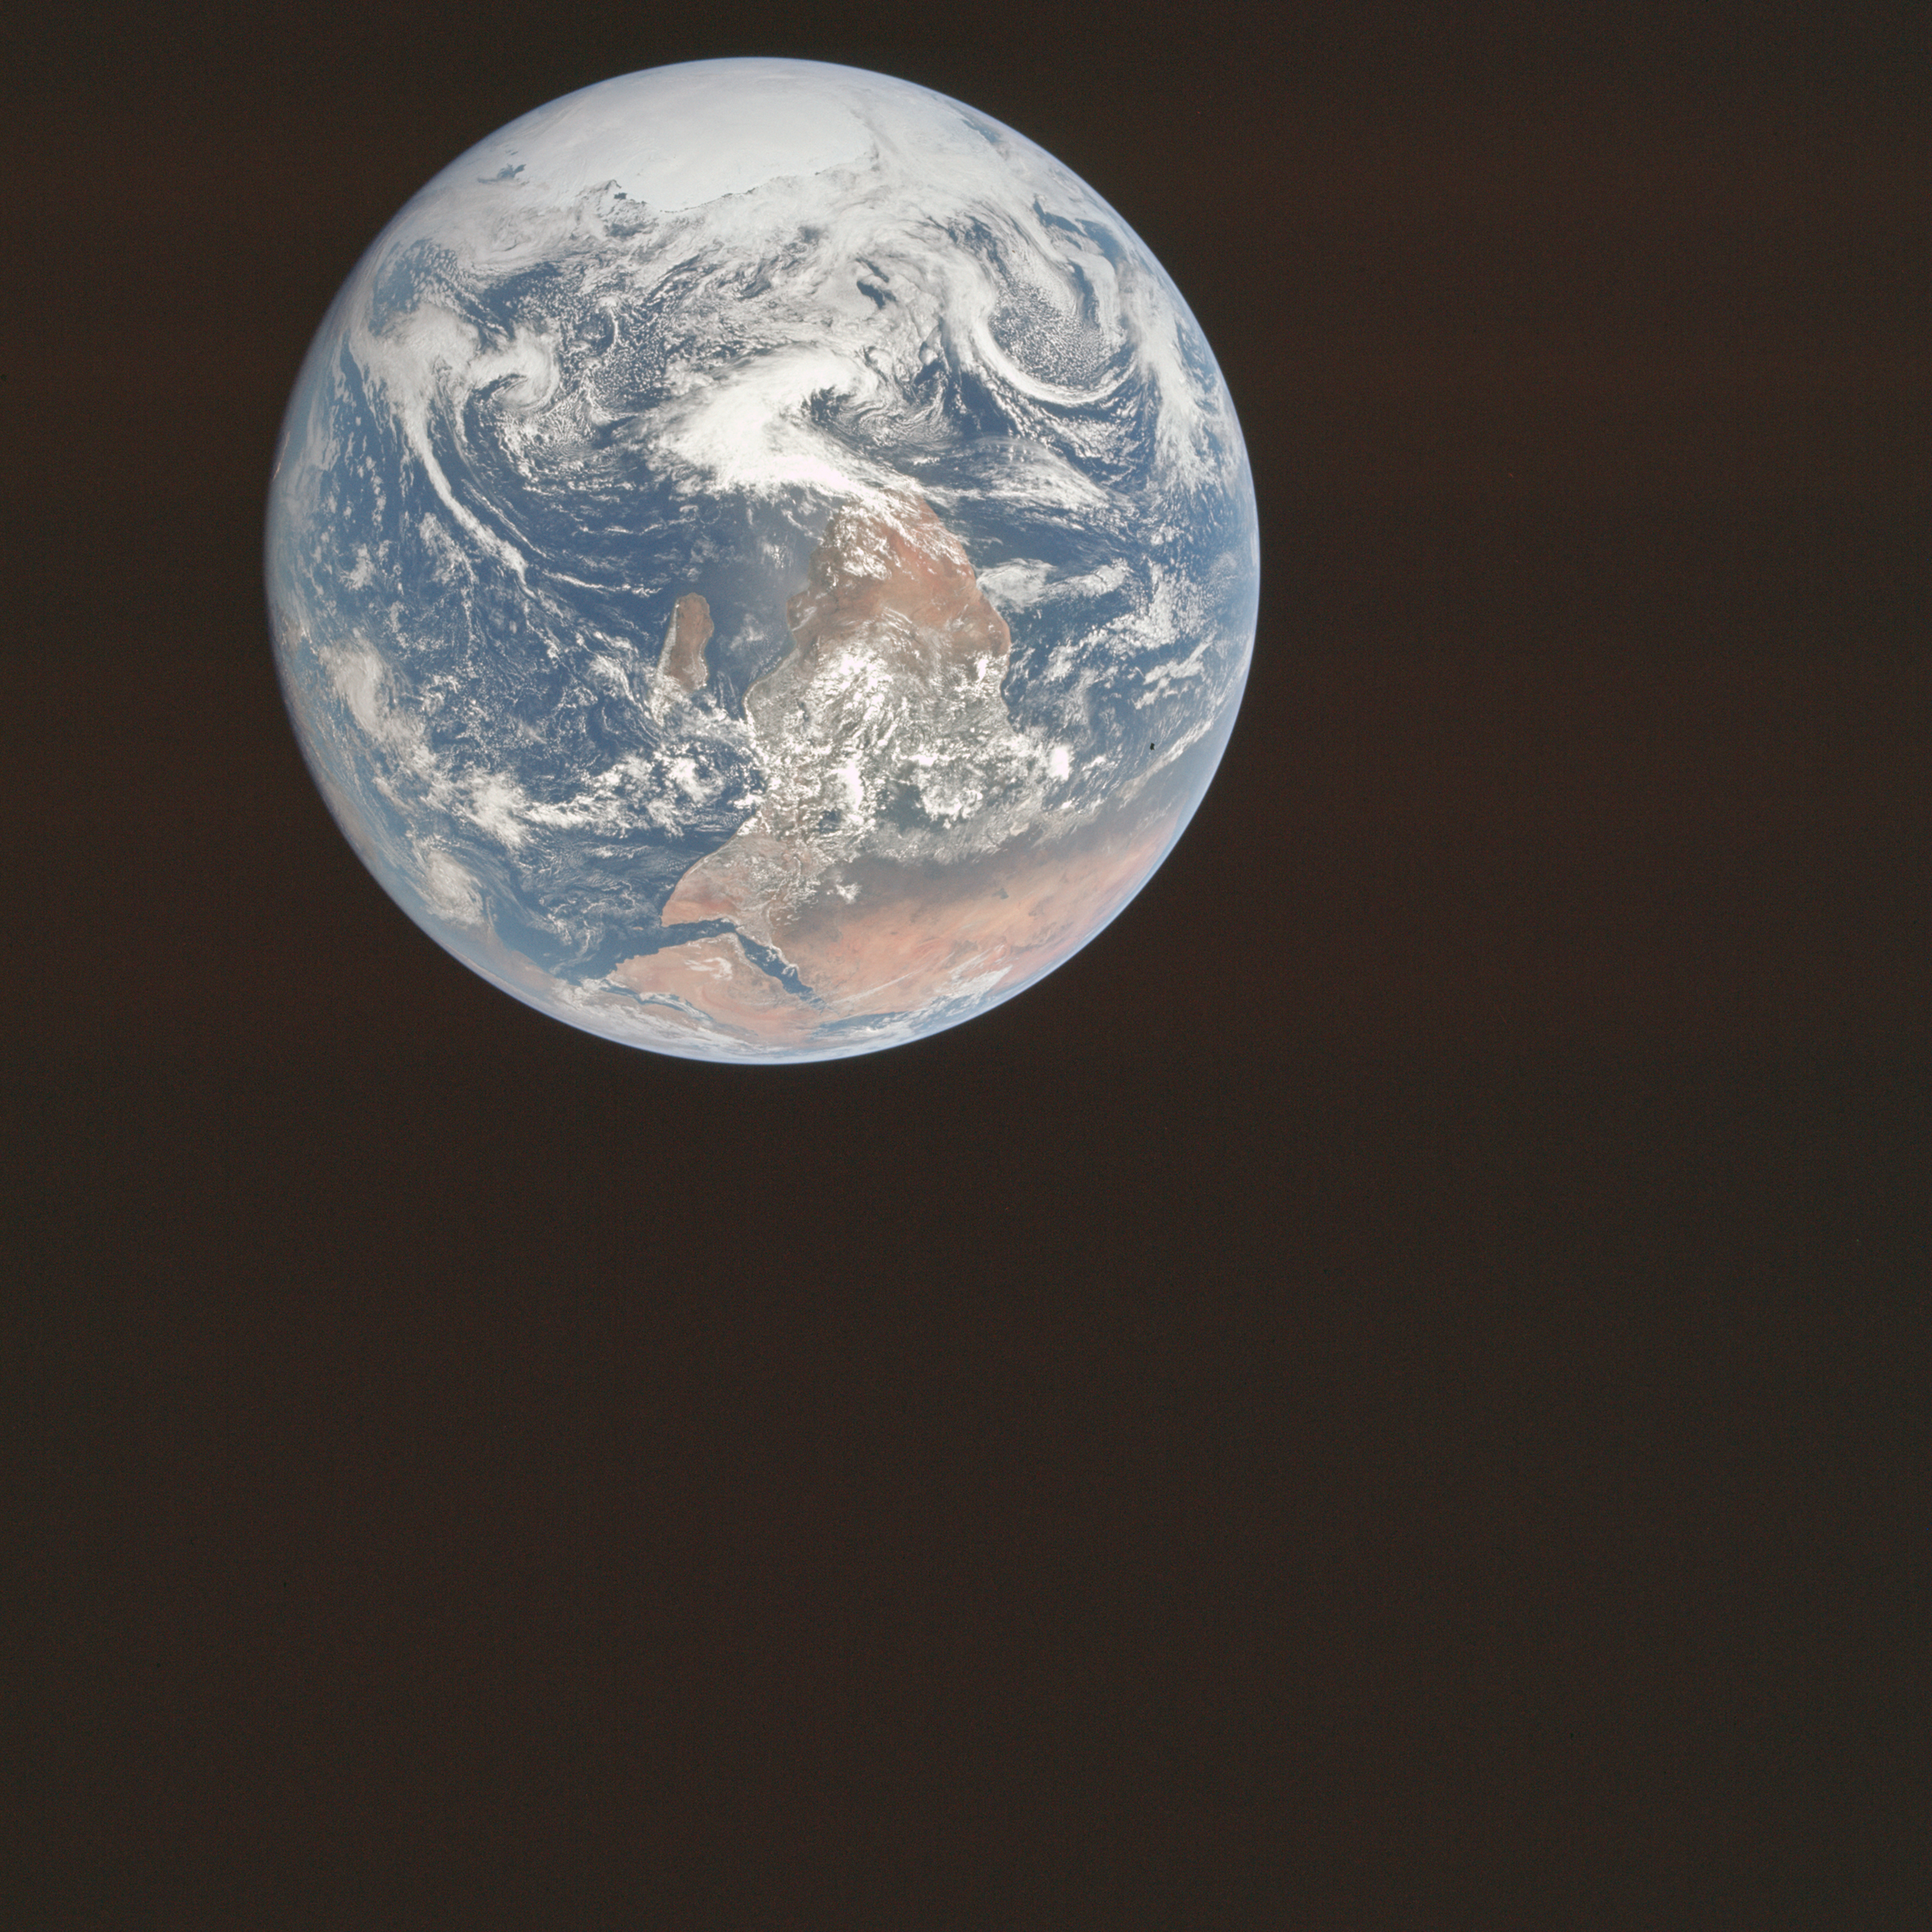 First photo of Earth from space which shows the south polar ice cap